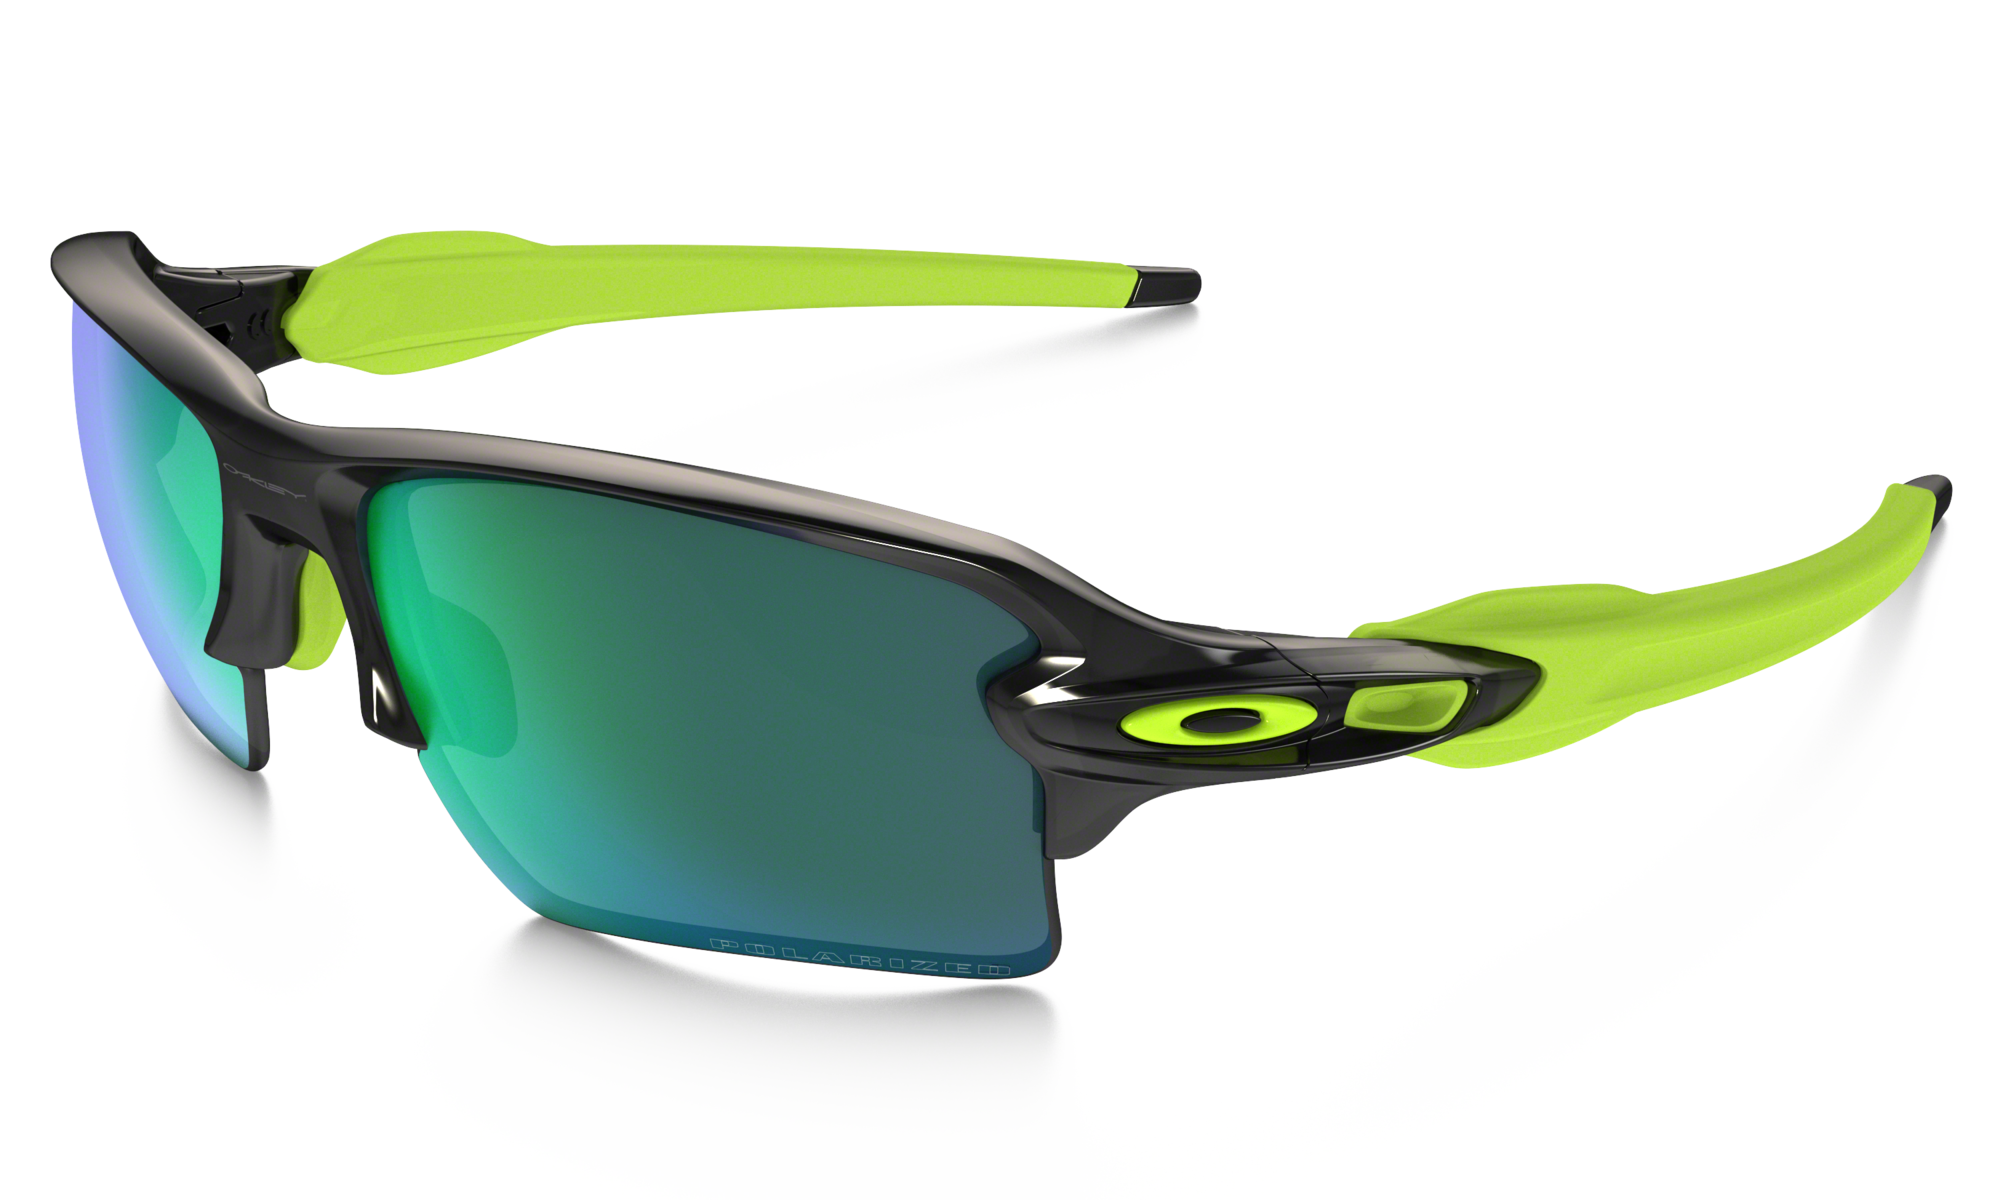 Okulary OAKLEY Flak 2.0 XL Black Ink / Jade Iridium Polarized oo9188-09